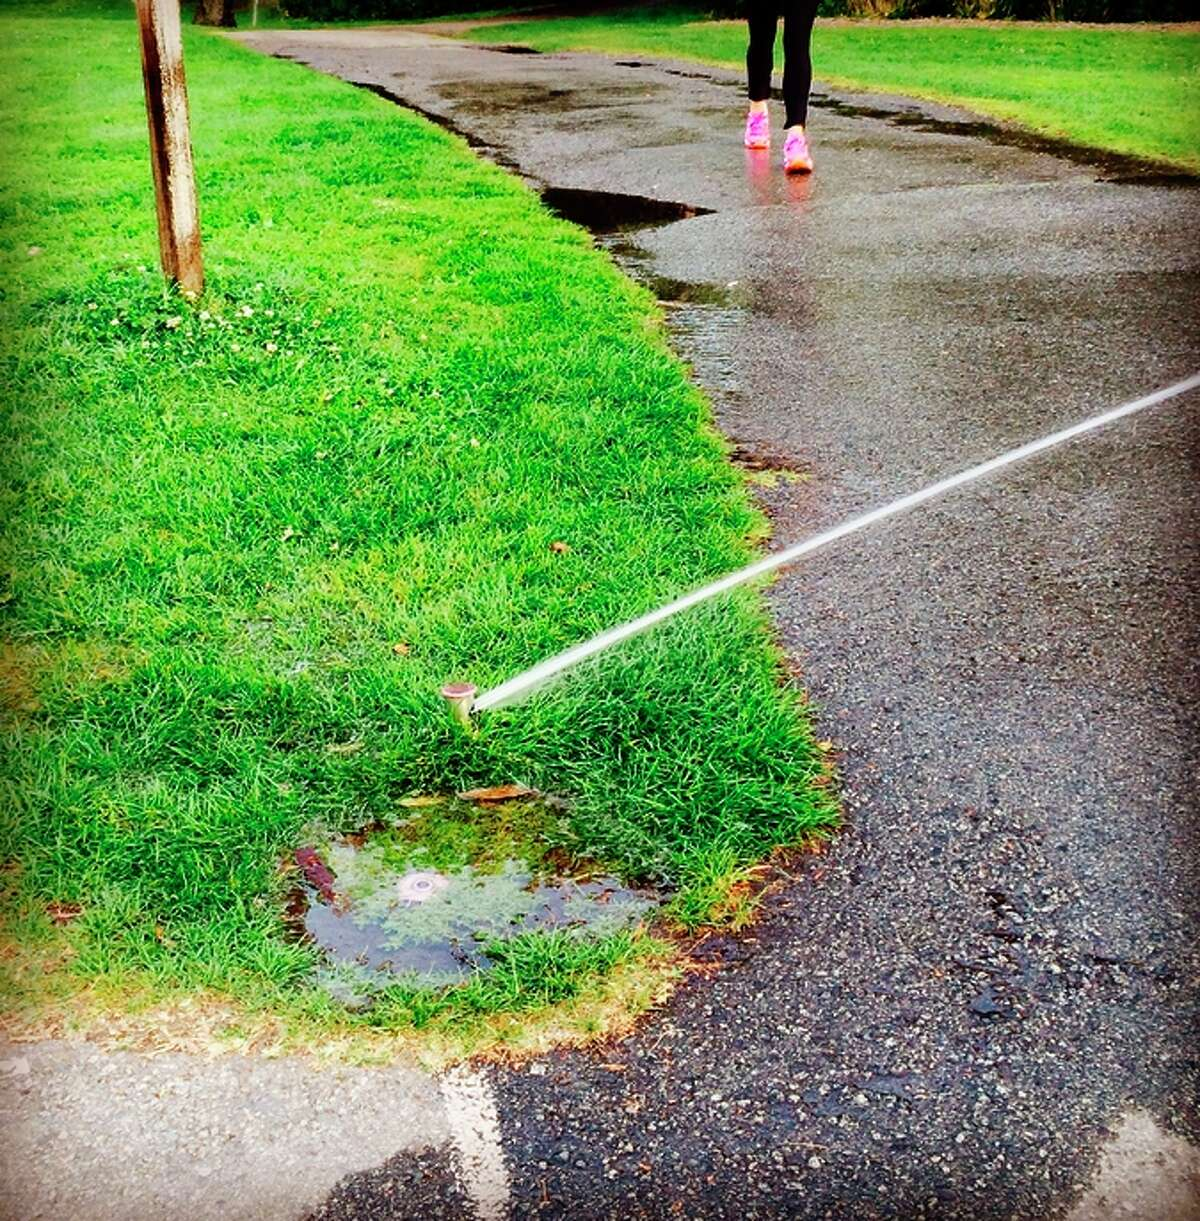 Sprinkler heads are commonly pointed in the wrong direction in San Francisco's Golden Gate Park, as this reader-submitted photo indicates.